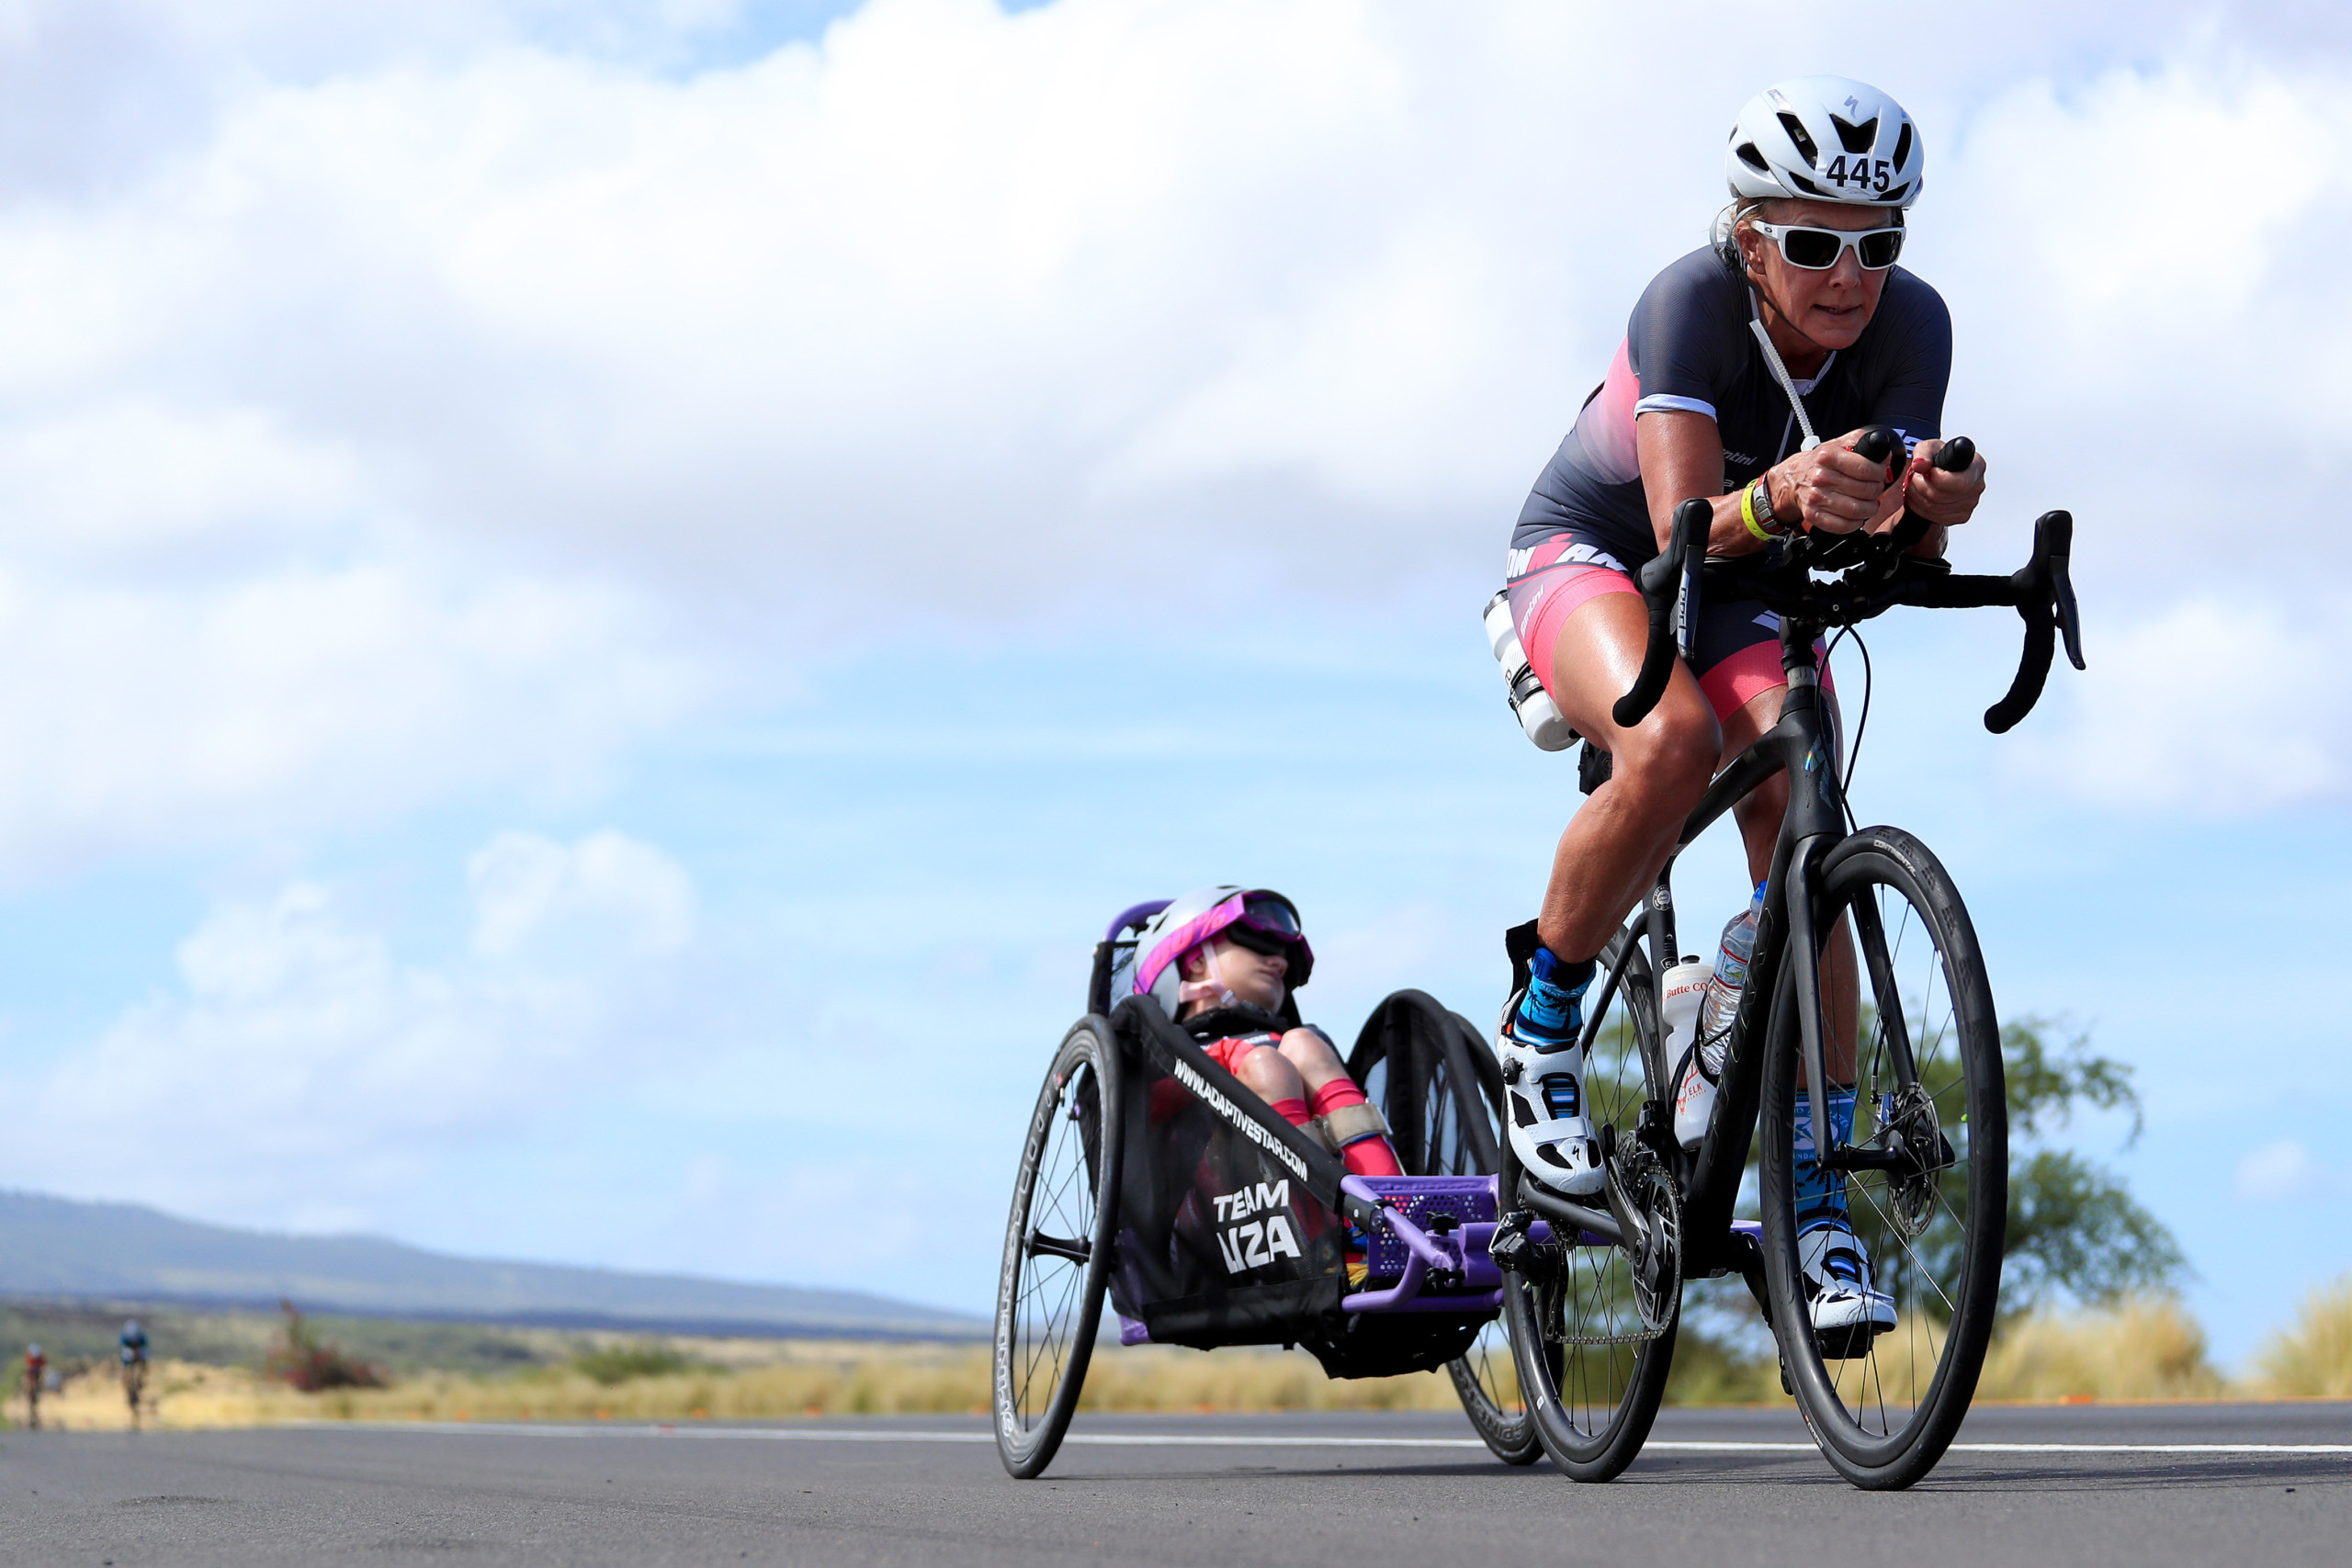 KAILUA KONA, HAWAII - OCTOBER 12: Beth James and daughter Liza James of Team Liza compete in the Ironman World Championships on October 12, 2019 in Kailua Kona, Hawaii. (Photo by Tom Pennington/Getty Images for IRONMAN)